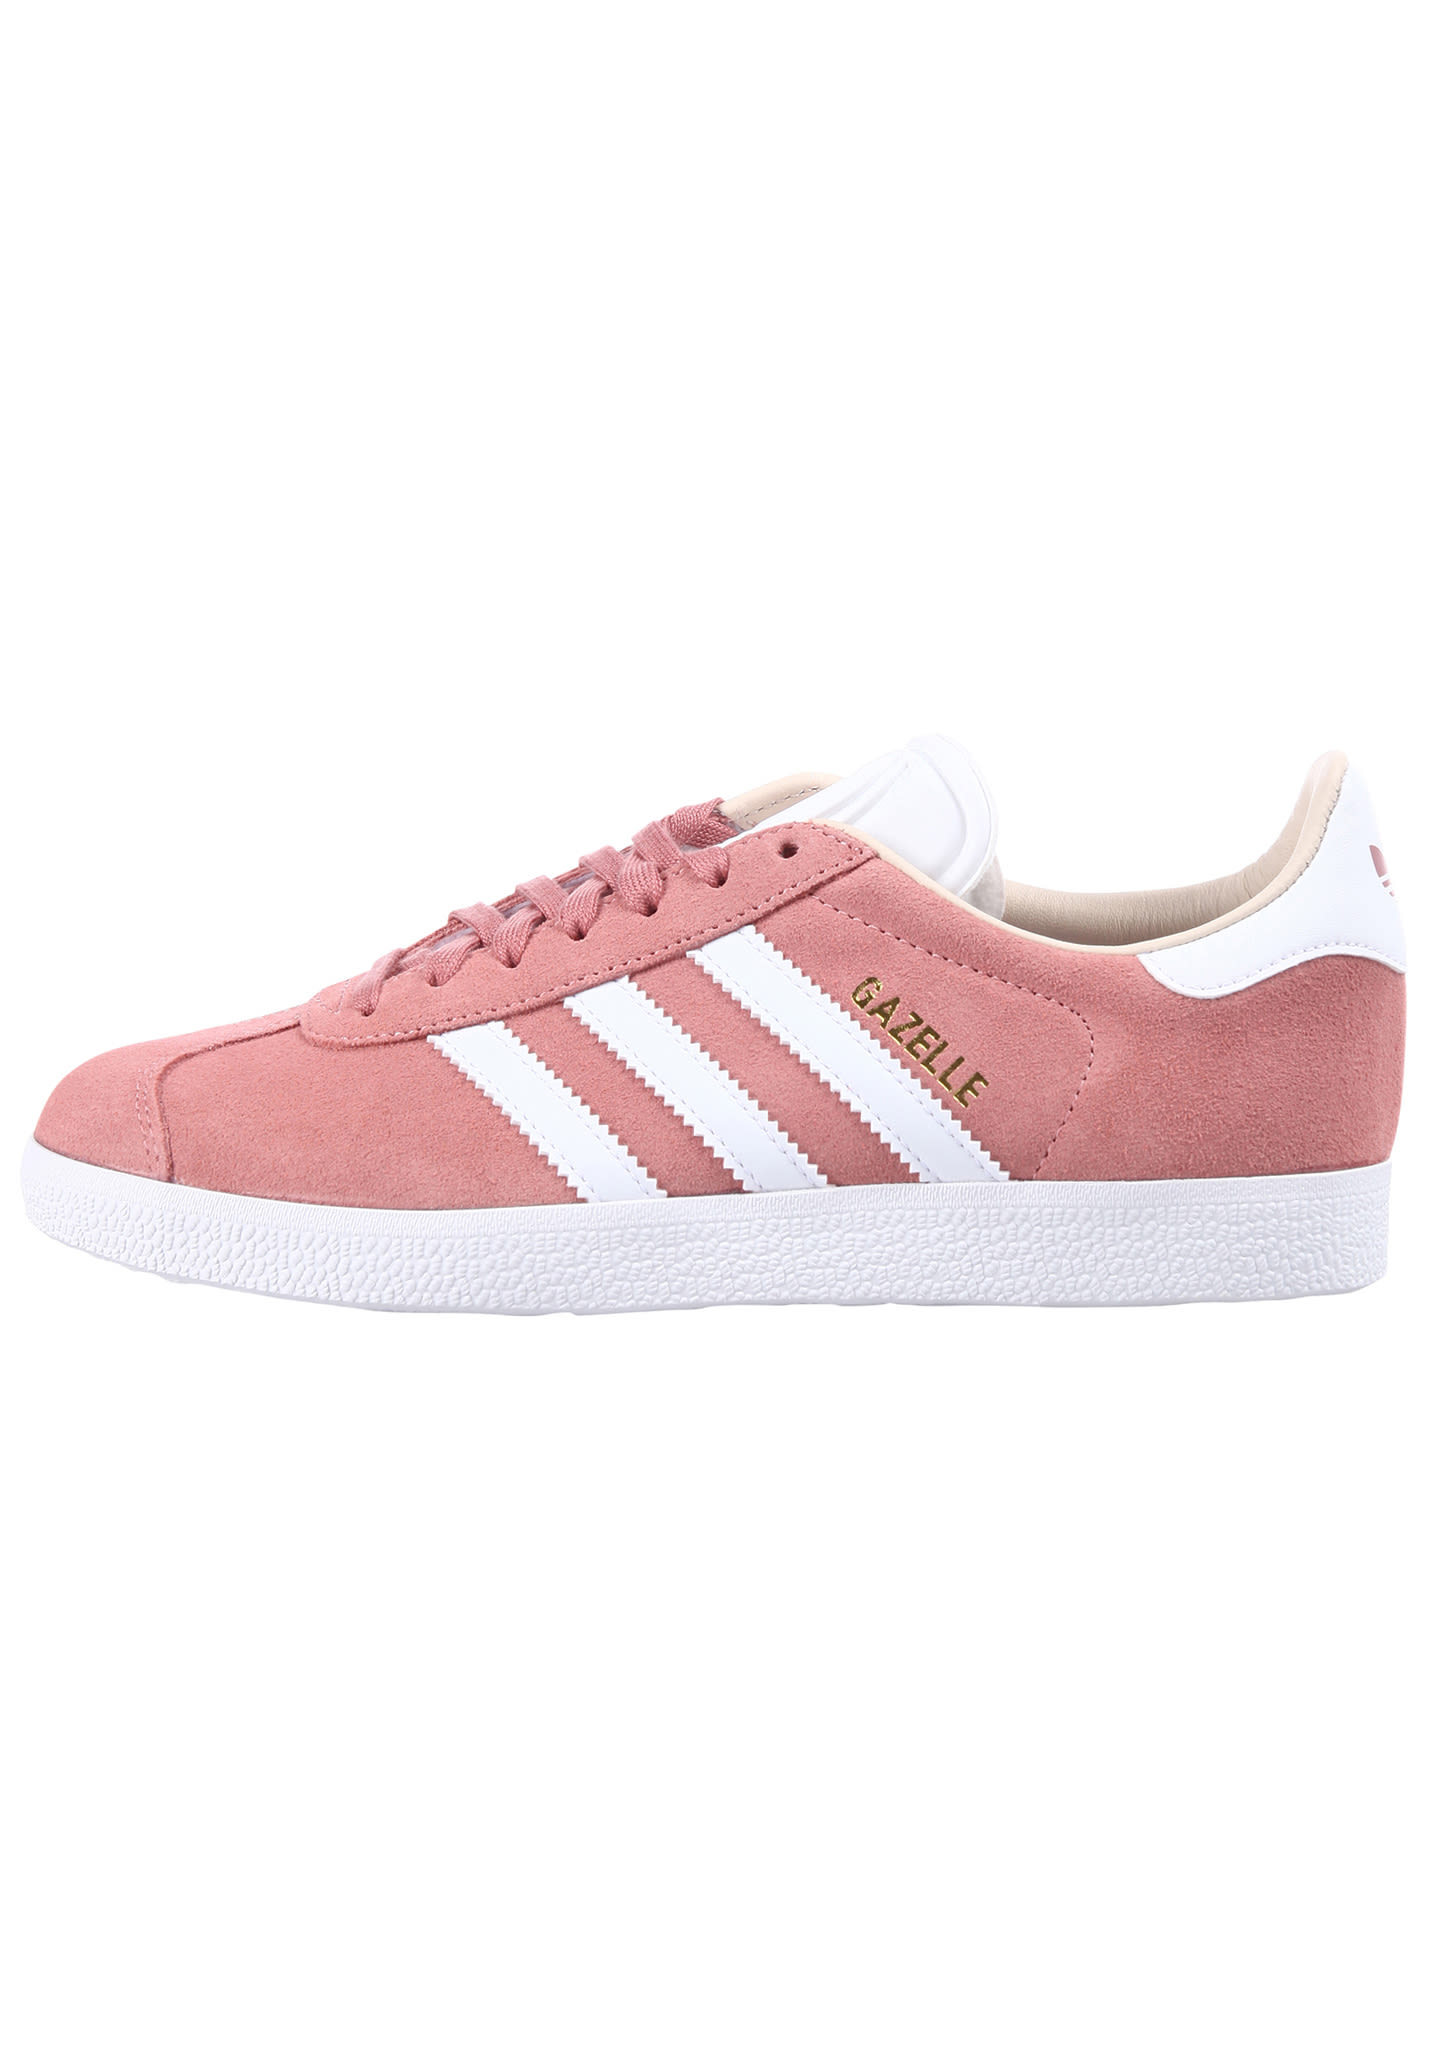 ADIDAS Gazelle - Sneakers for Women - Pink - Planet Sports